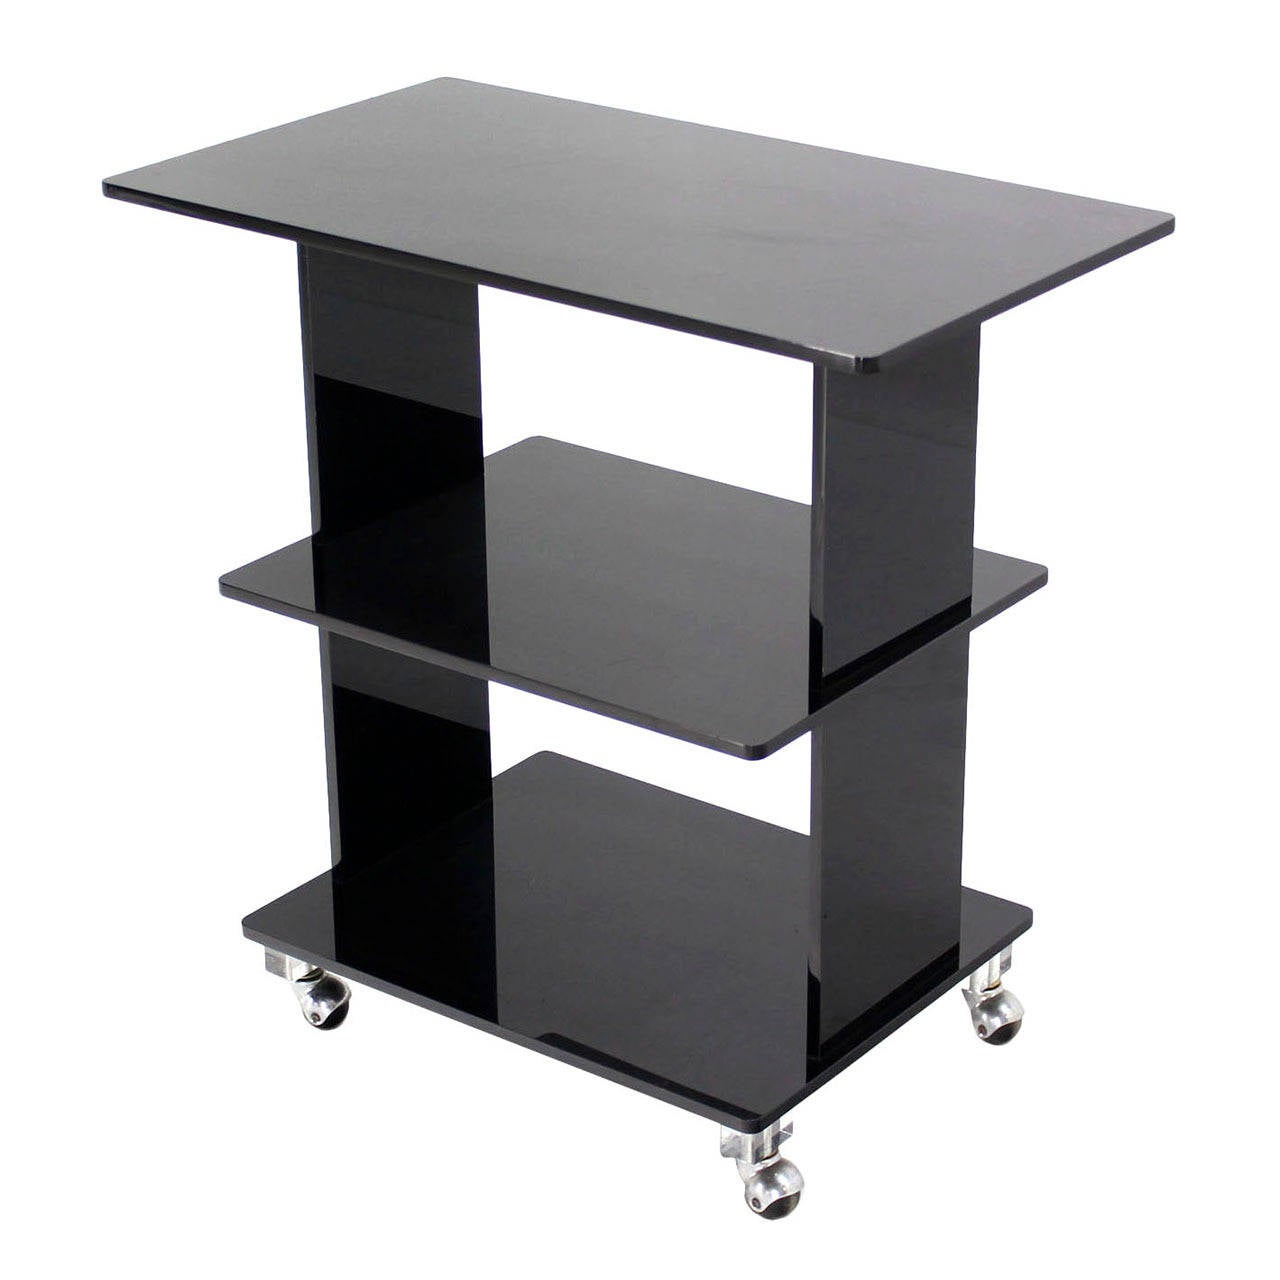 Smoked Lucite Rolling Cart Serving Table For Sale At 1stdibs